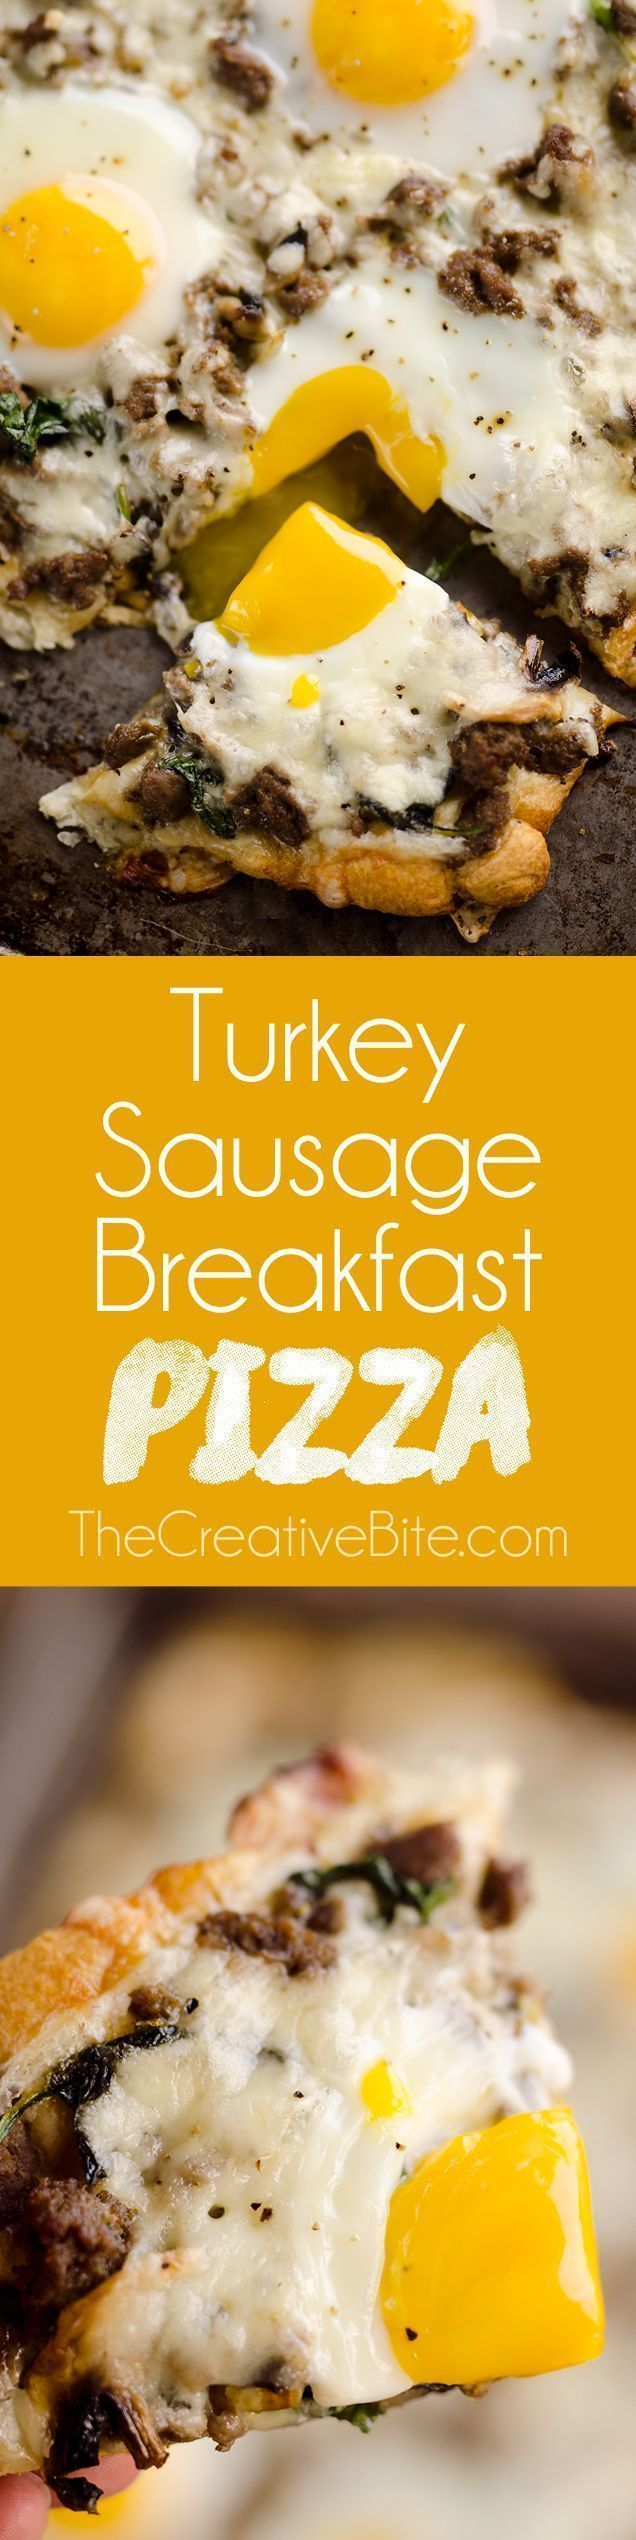 Turkey Sausage Breakfast Pizza - #breakfast #pizza #sausage #turkey - #BreakfastPizza